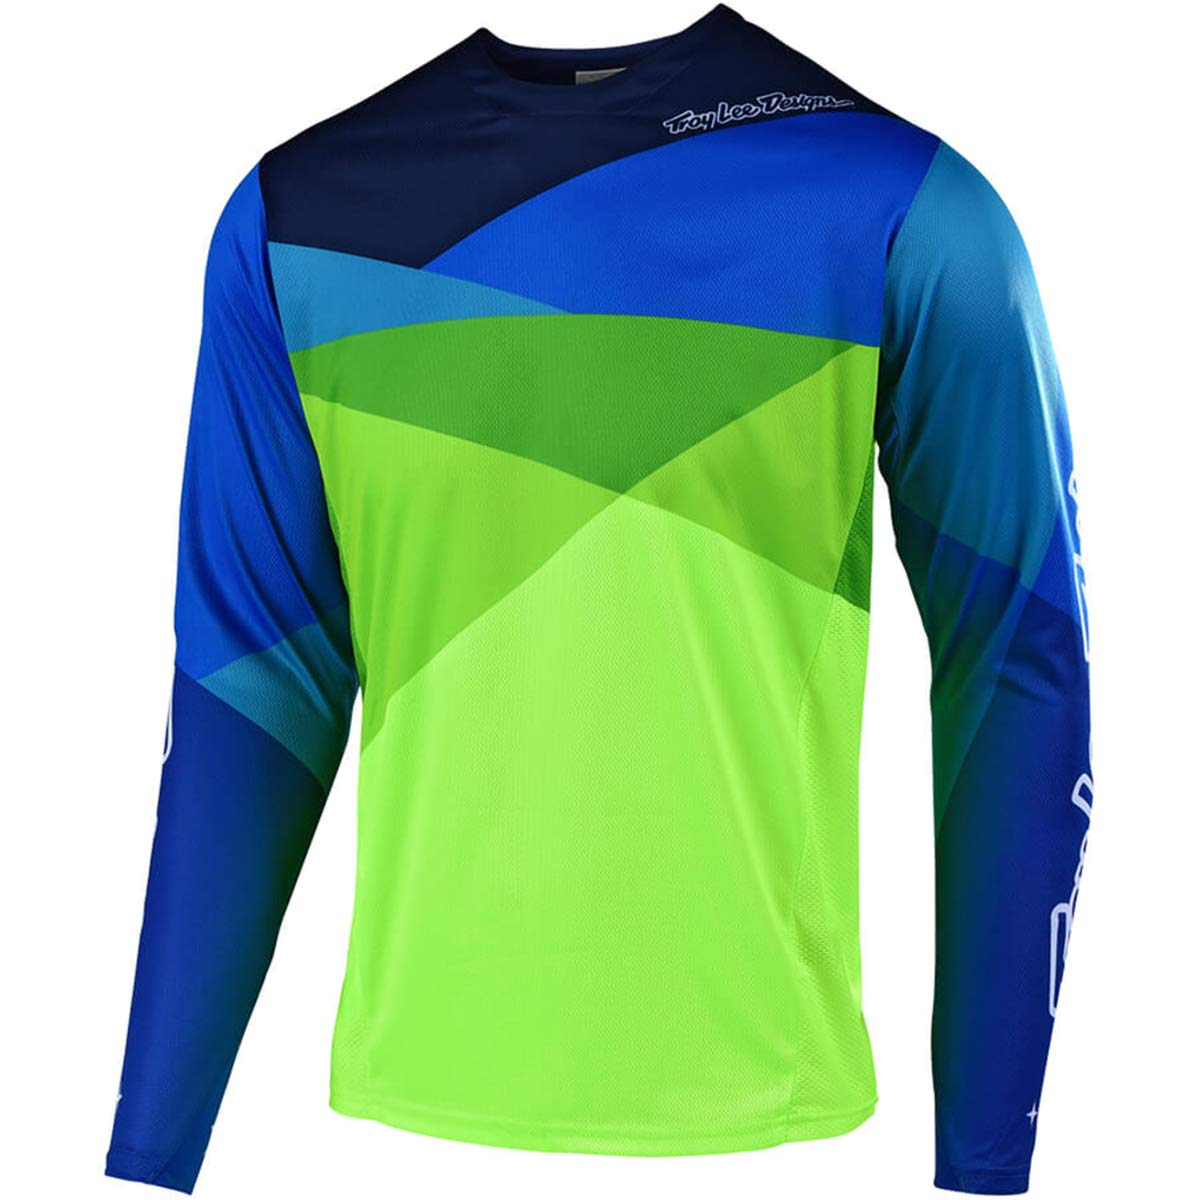 Troy Lee Designs Sprint Jersey - Men's Jet Yellow/Green, S